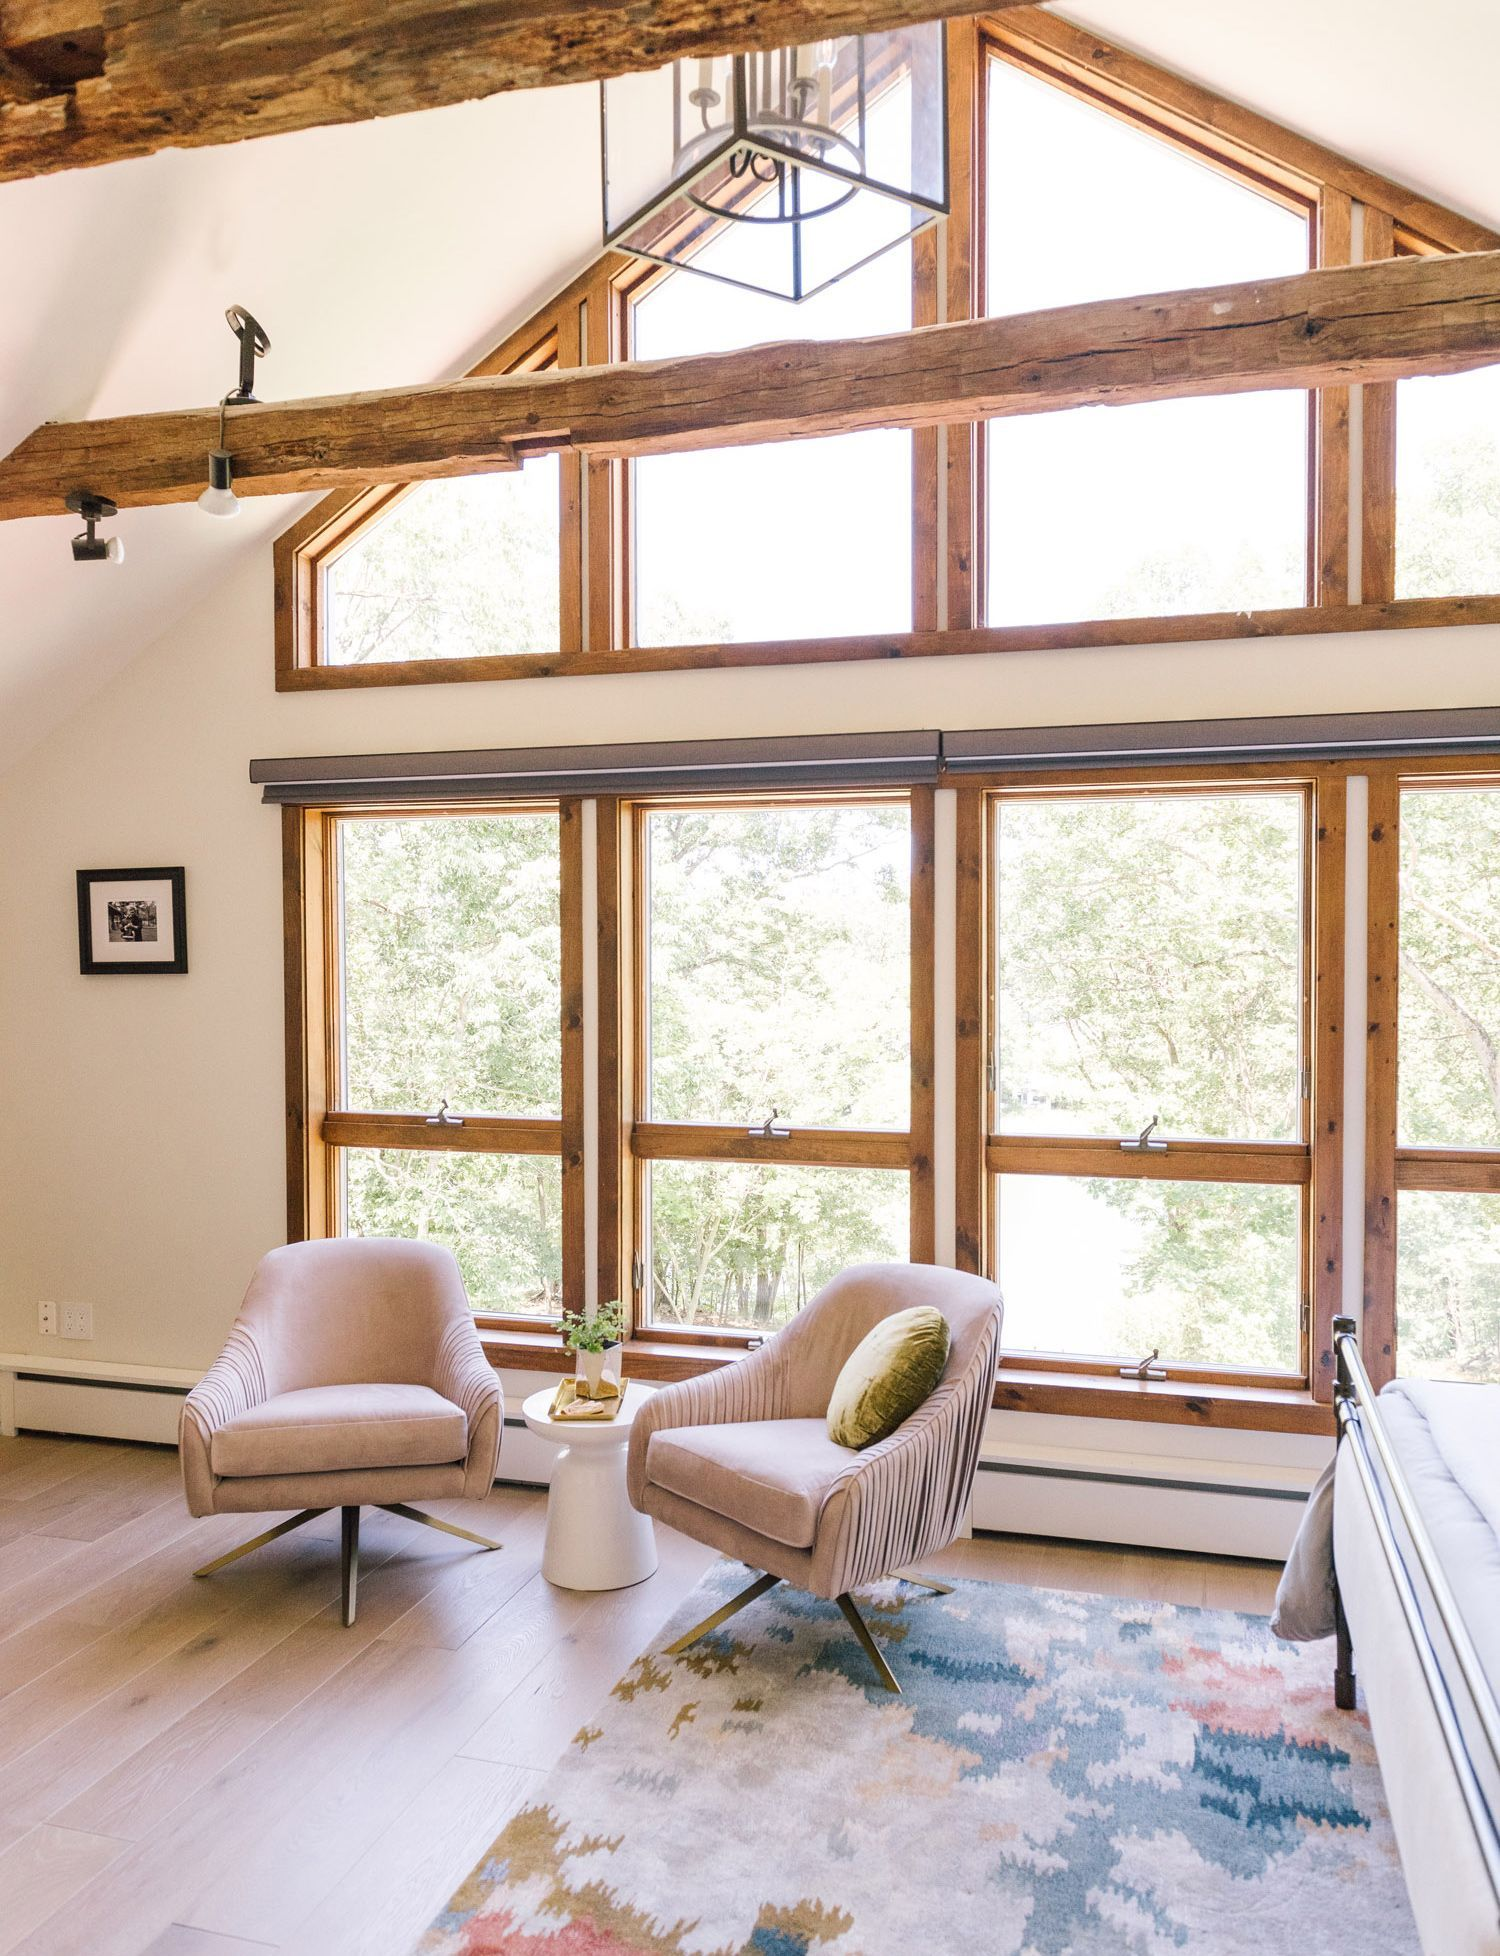 It's All About Compromise: Southwestern Meets Mid-Century in Boulder, Colorado - Front + Main #cityloftsherwinwilliams It's All About Compromise: Southwestern Meets Mid-Century in Boulder, Colorado - Front + Main #cityloftsherwinwilliams